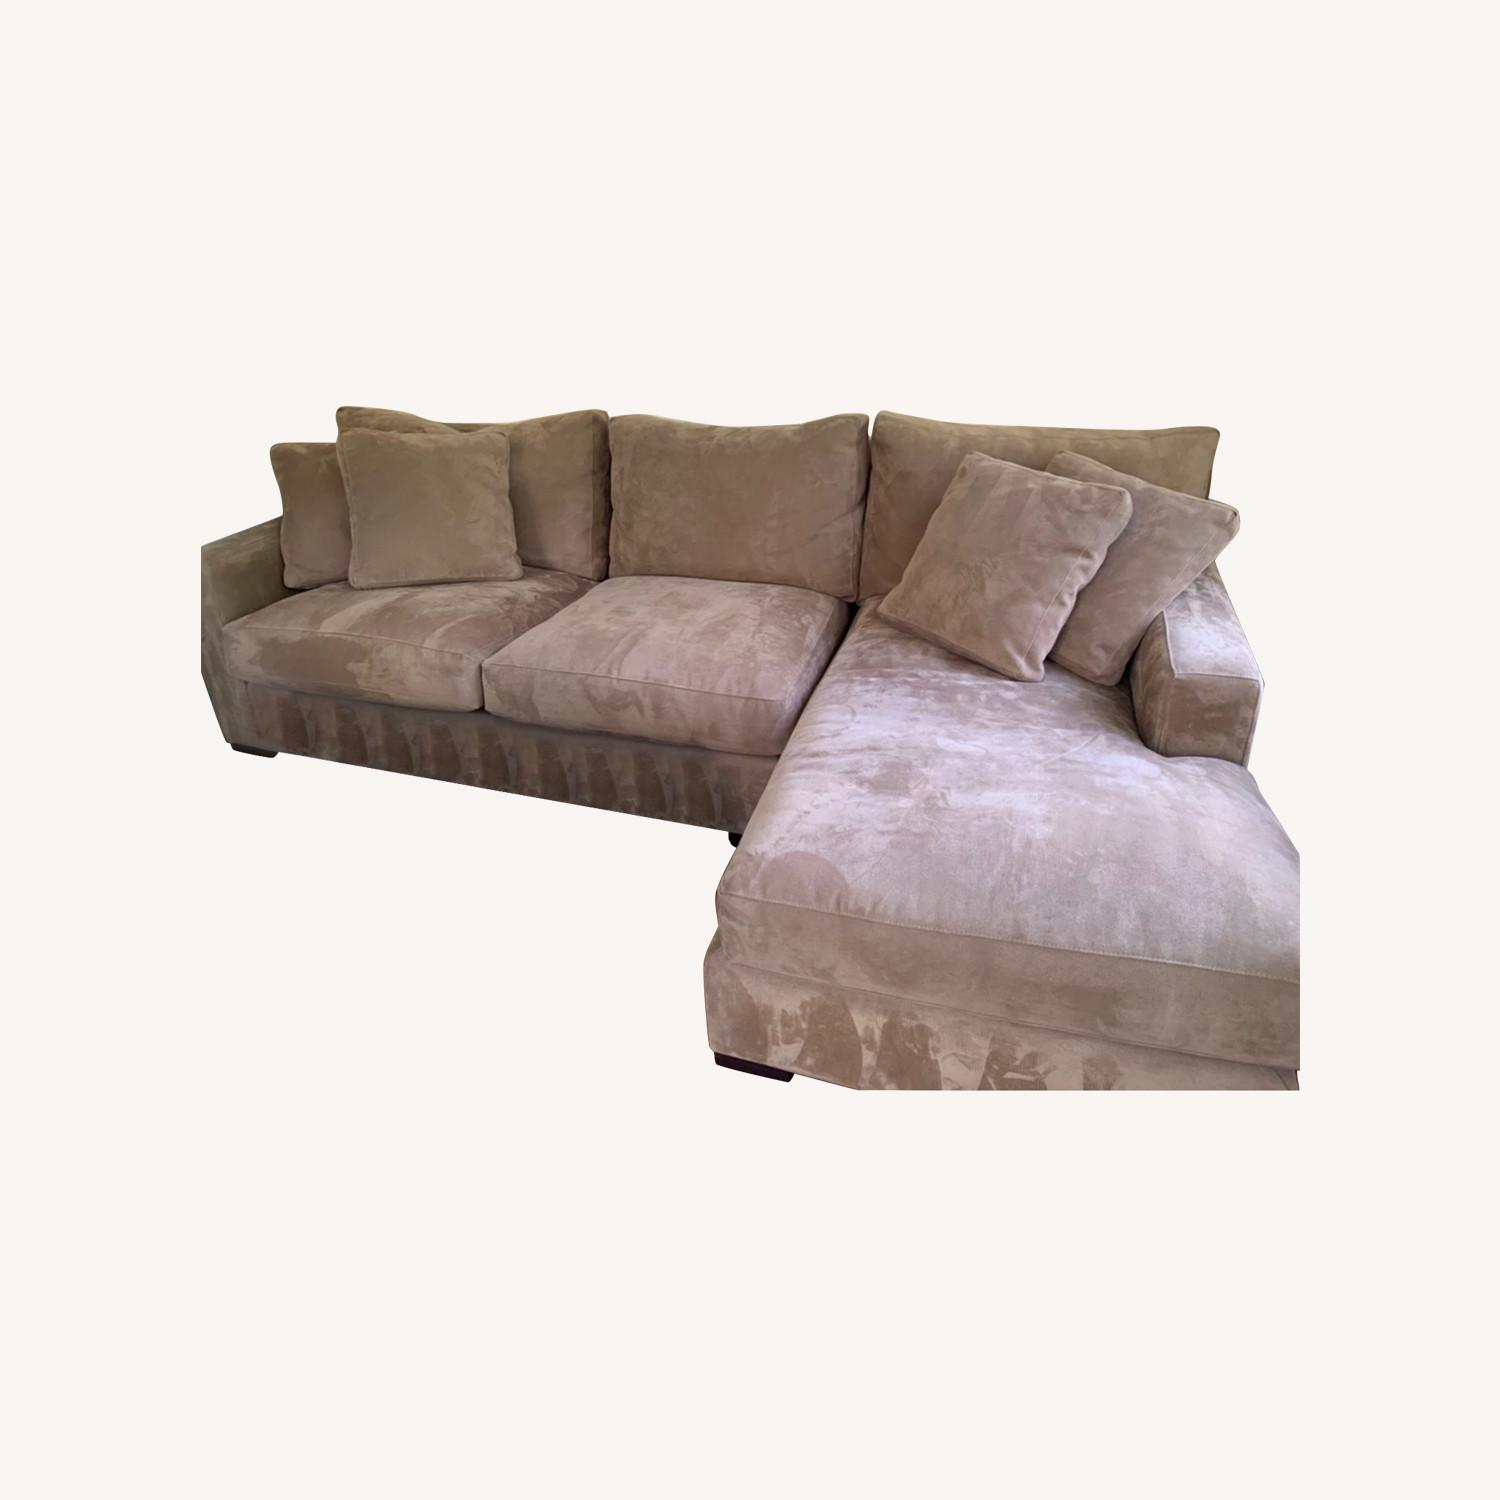 Crate and Barrel Axis Sectional - image-0